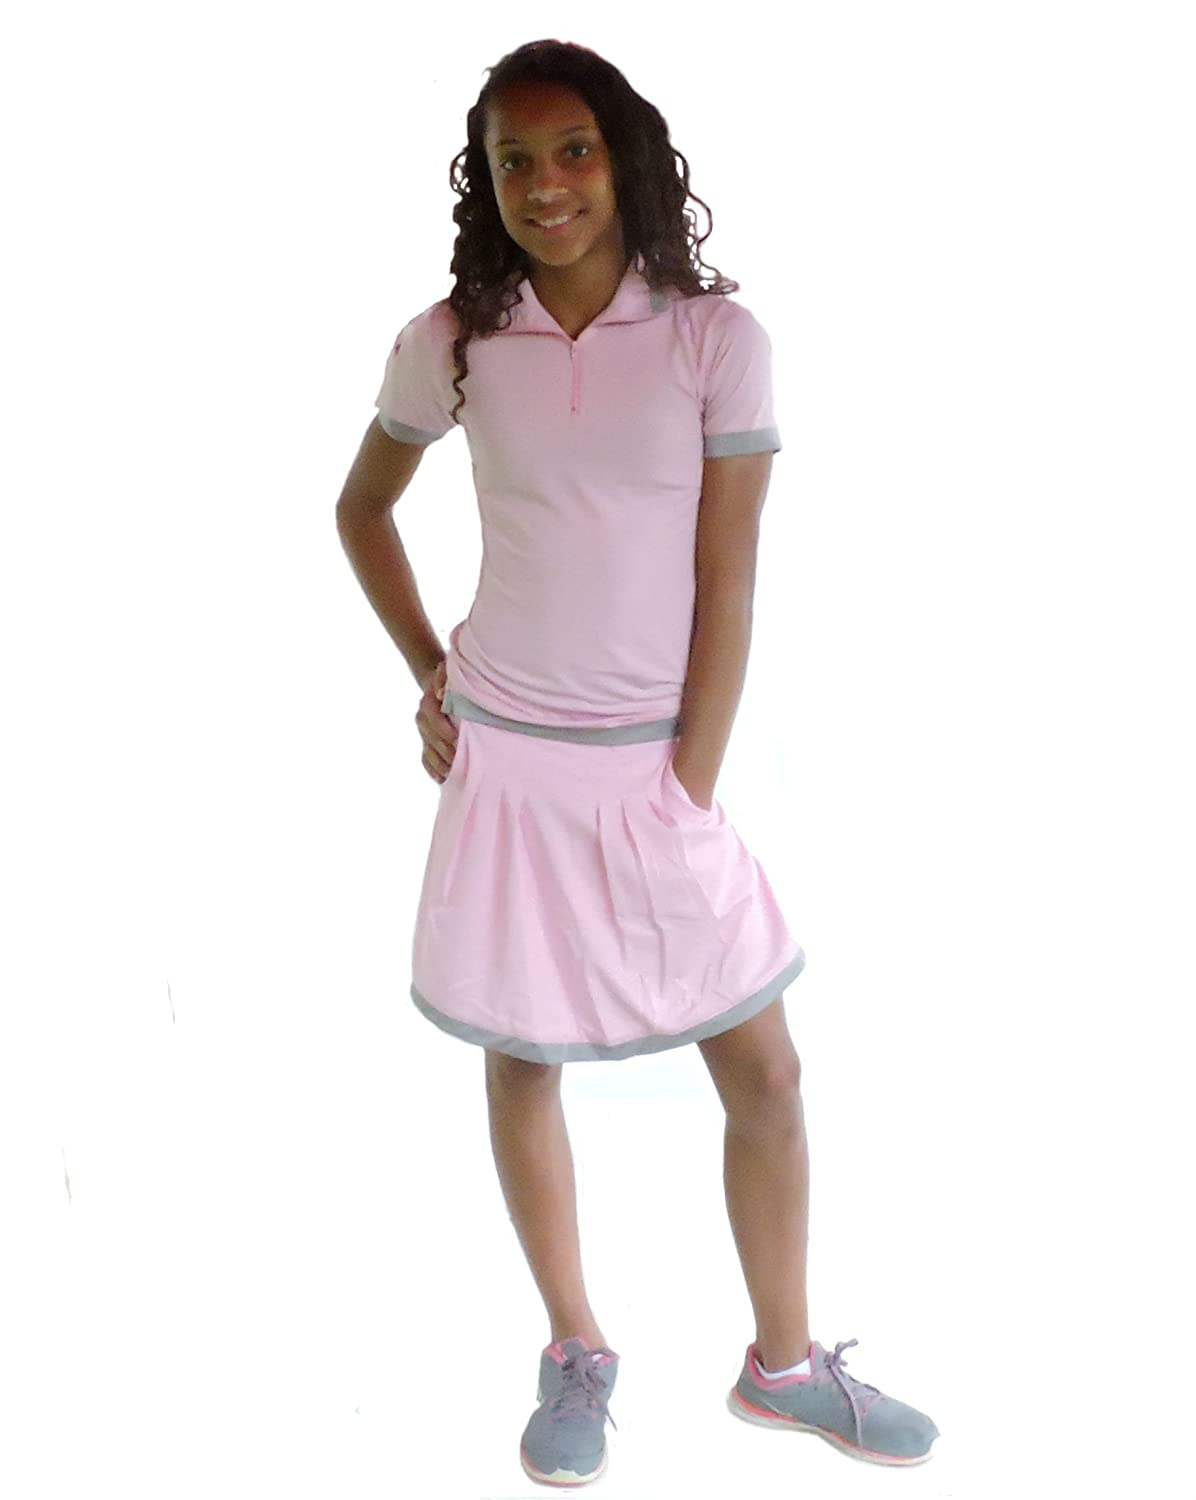 Sephlin - Lady Natalia Junior Girls Pink and Silver Pleats Skort 0523